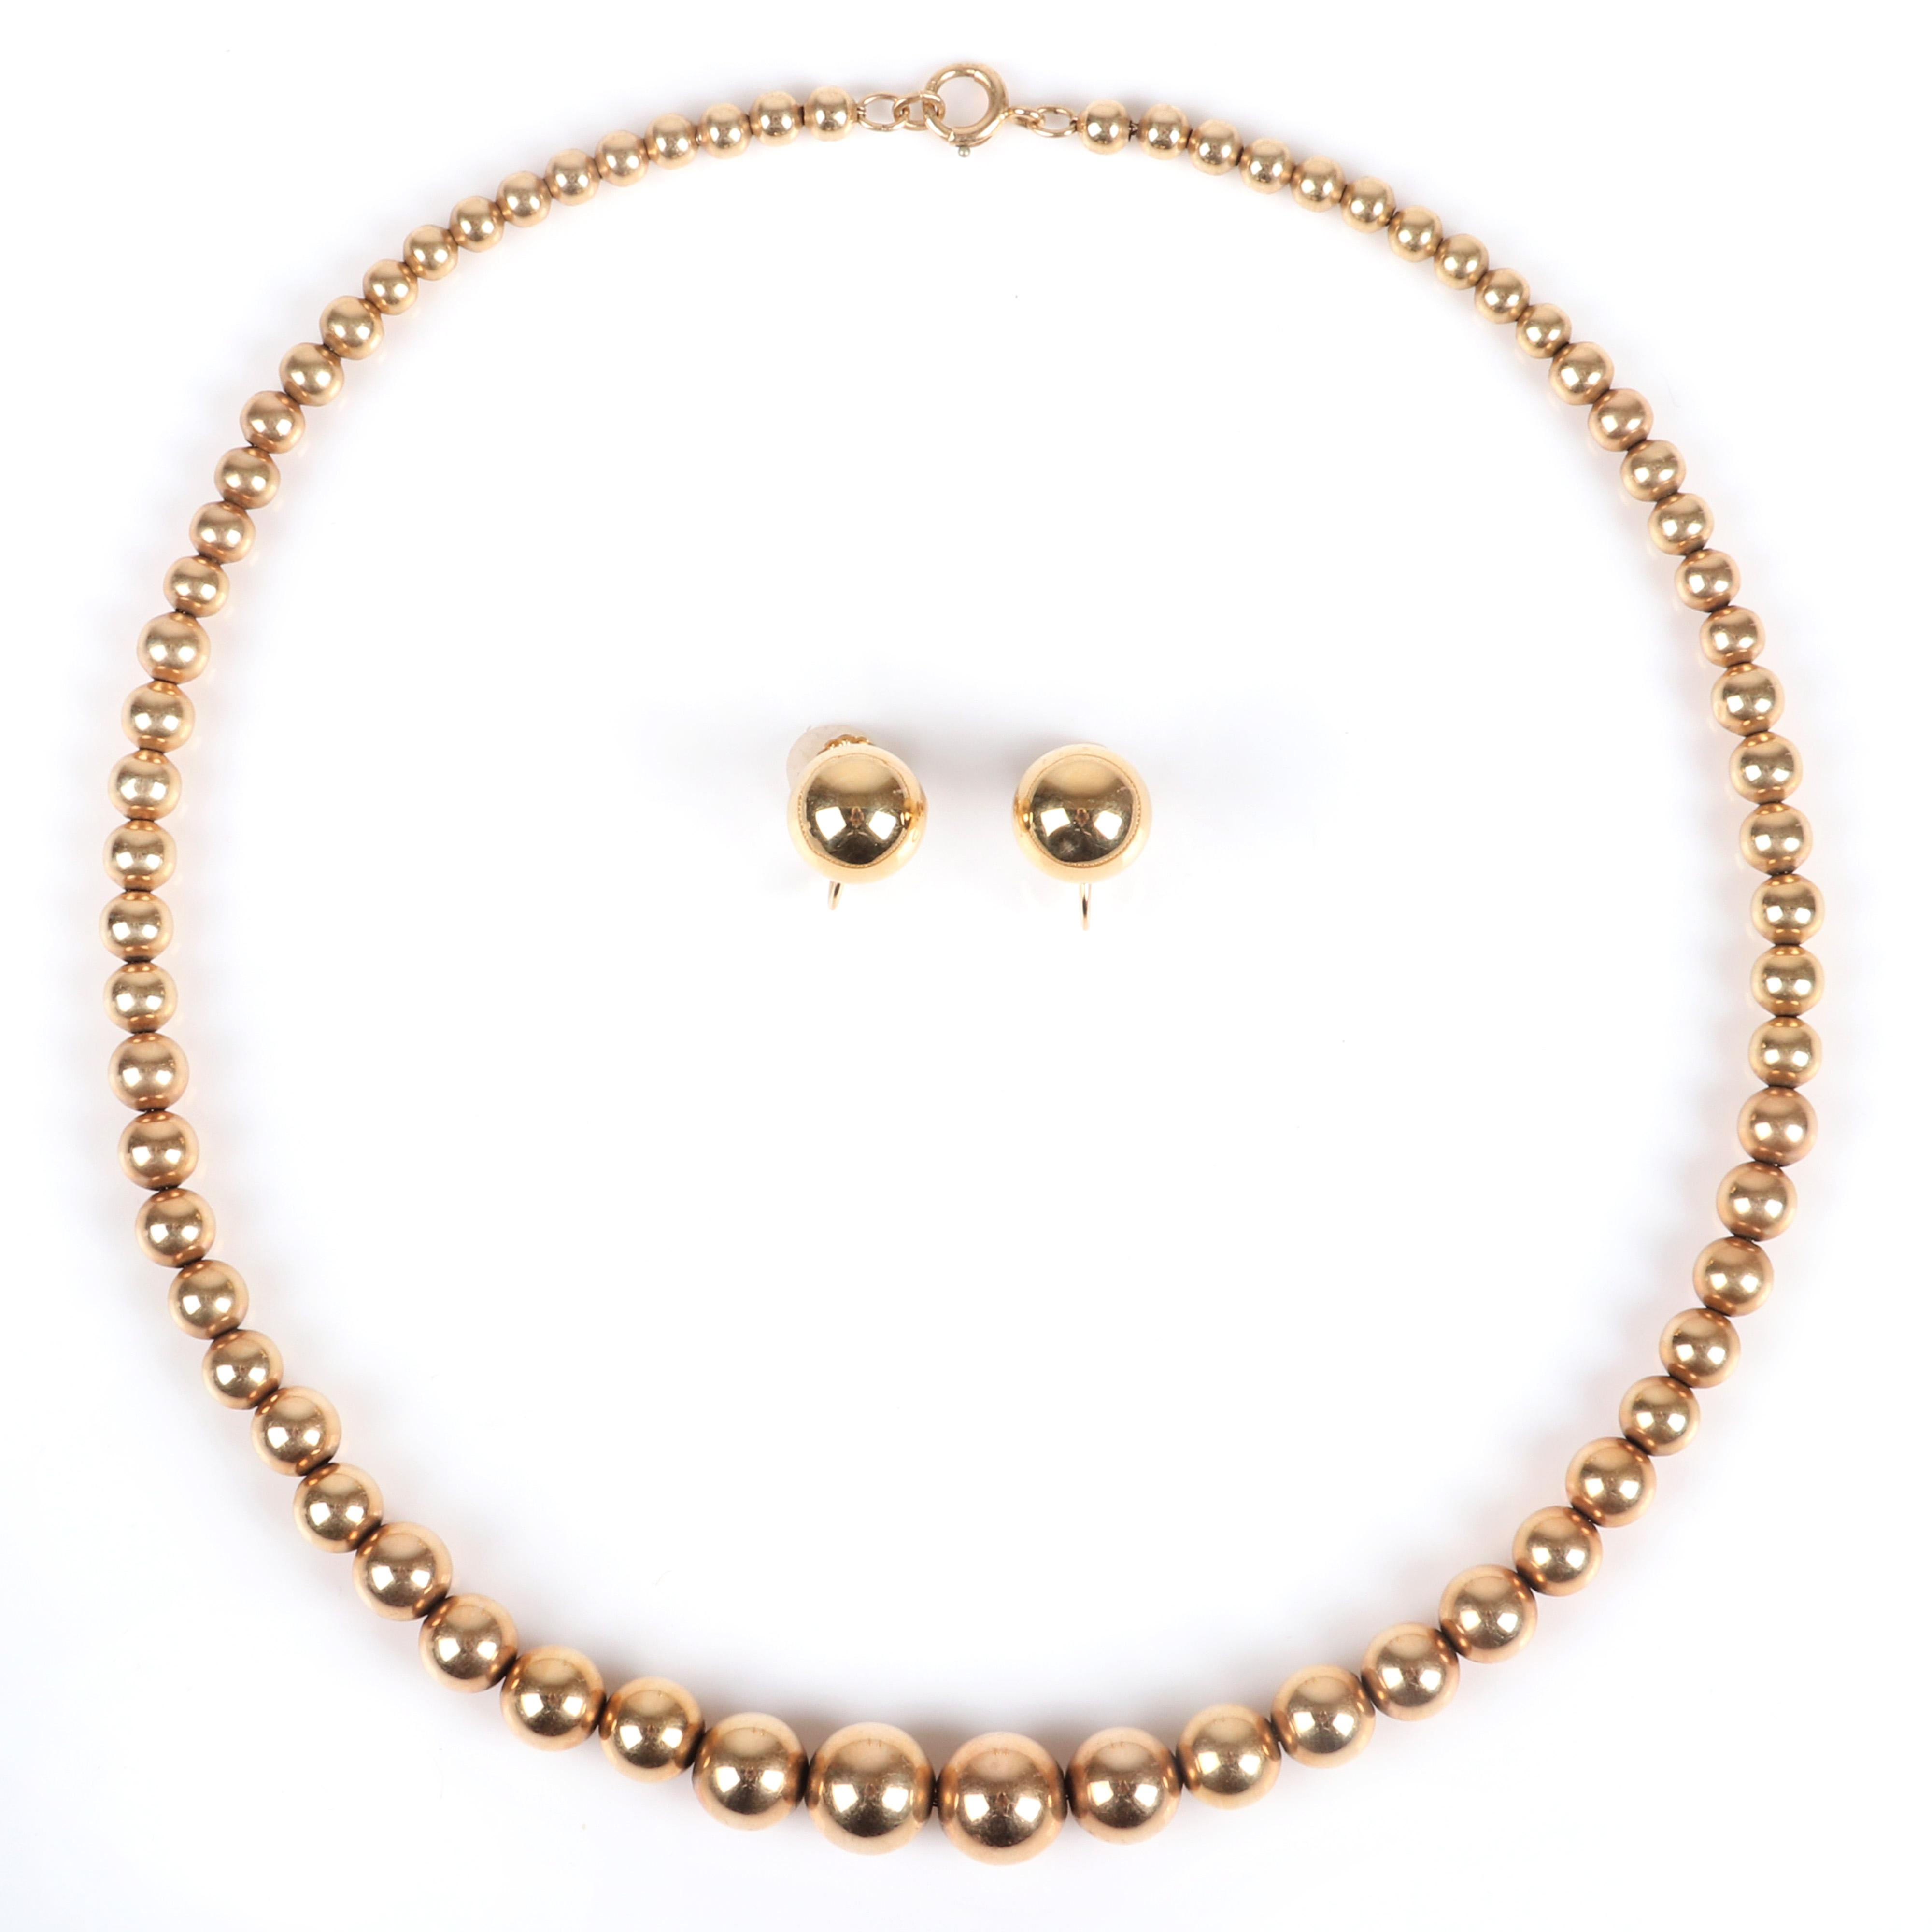 """Stamped 14K yellow gold 13.05dwt graduated bead necklace and earring set. 16""""L, (necklace), 1/2"""" diam, (earrings) 13.05 dwt"""